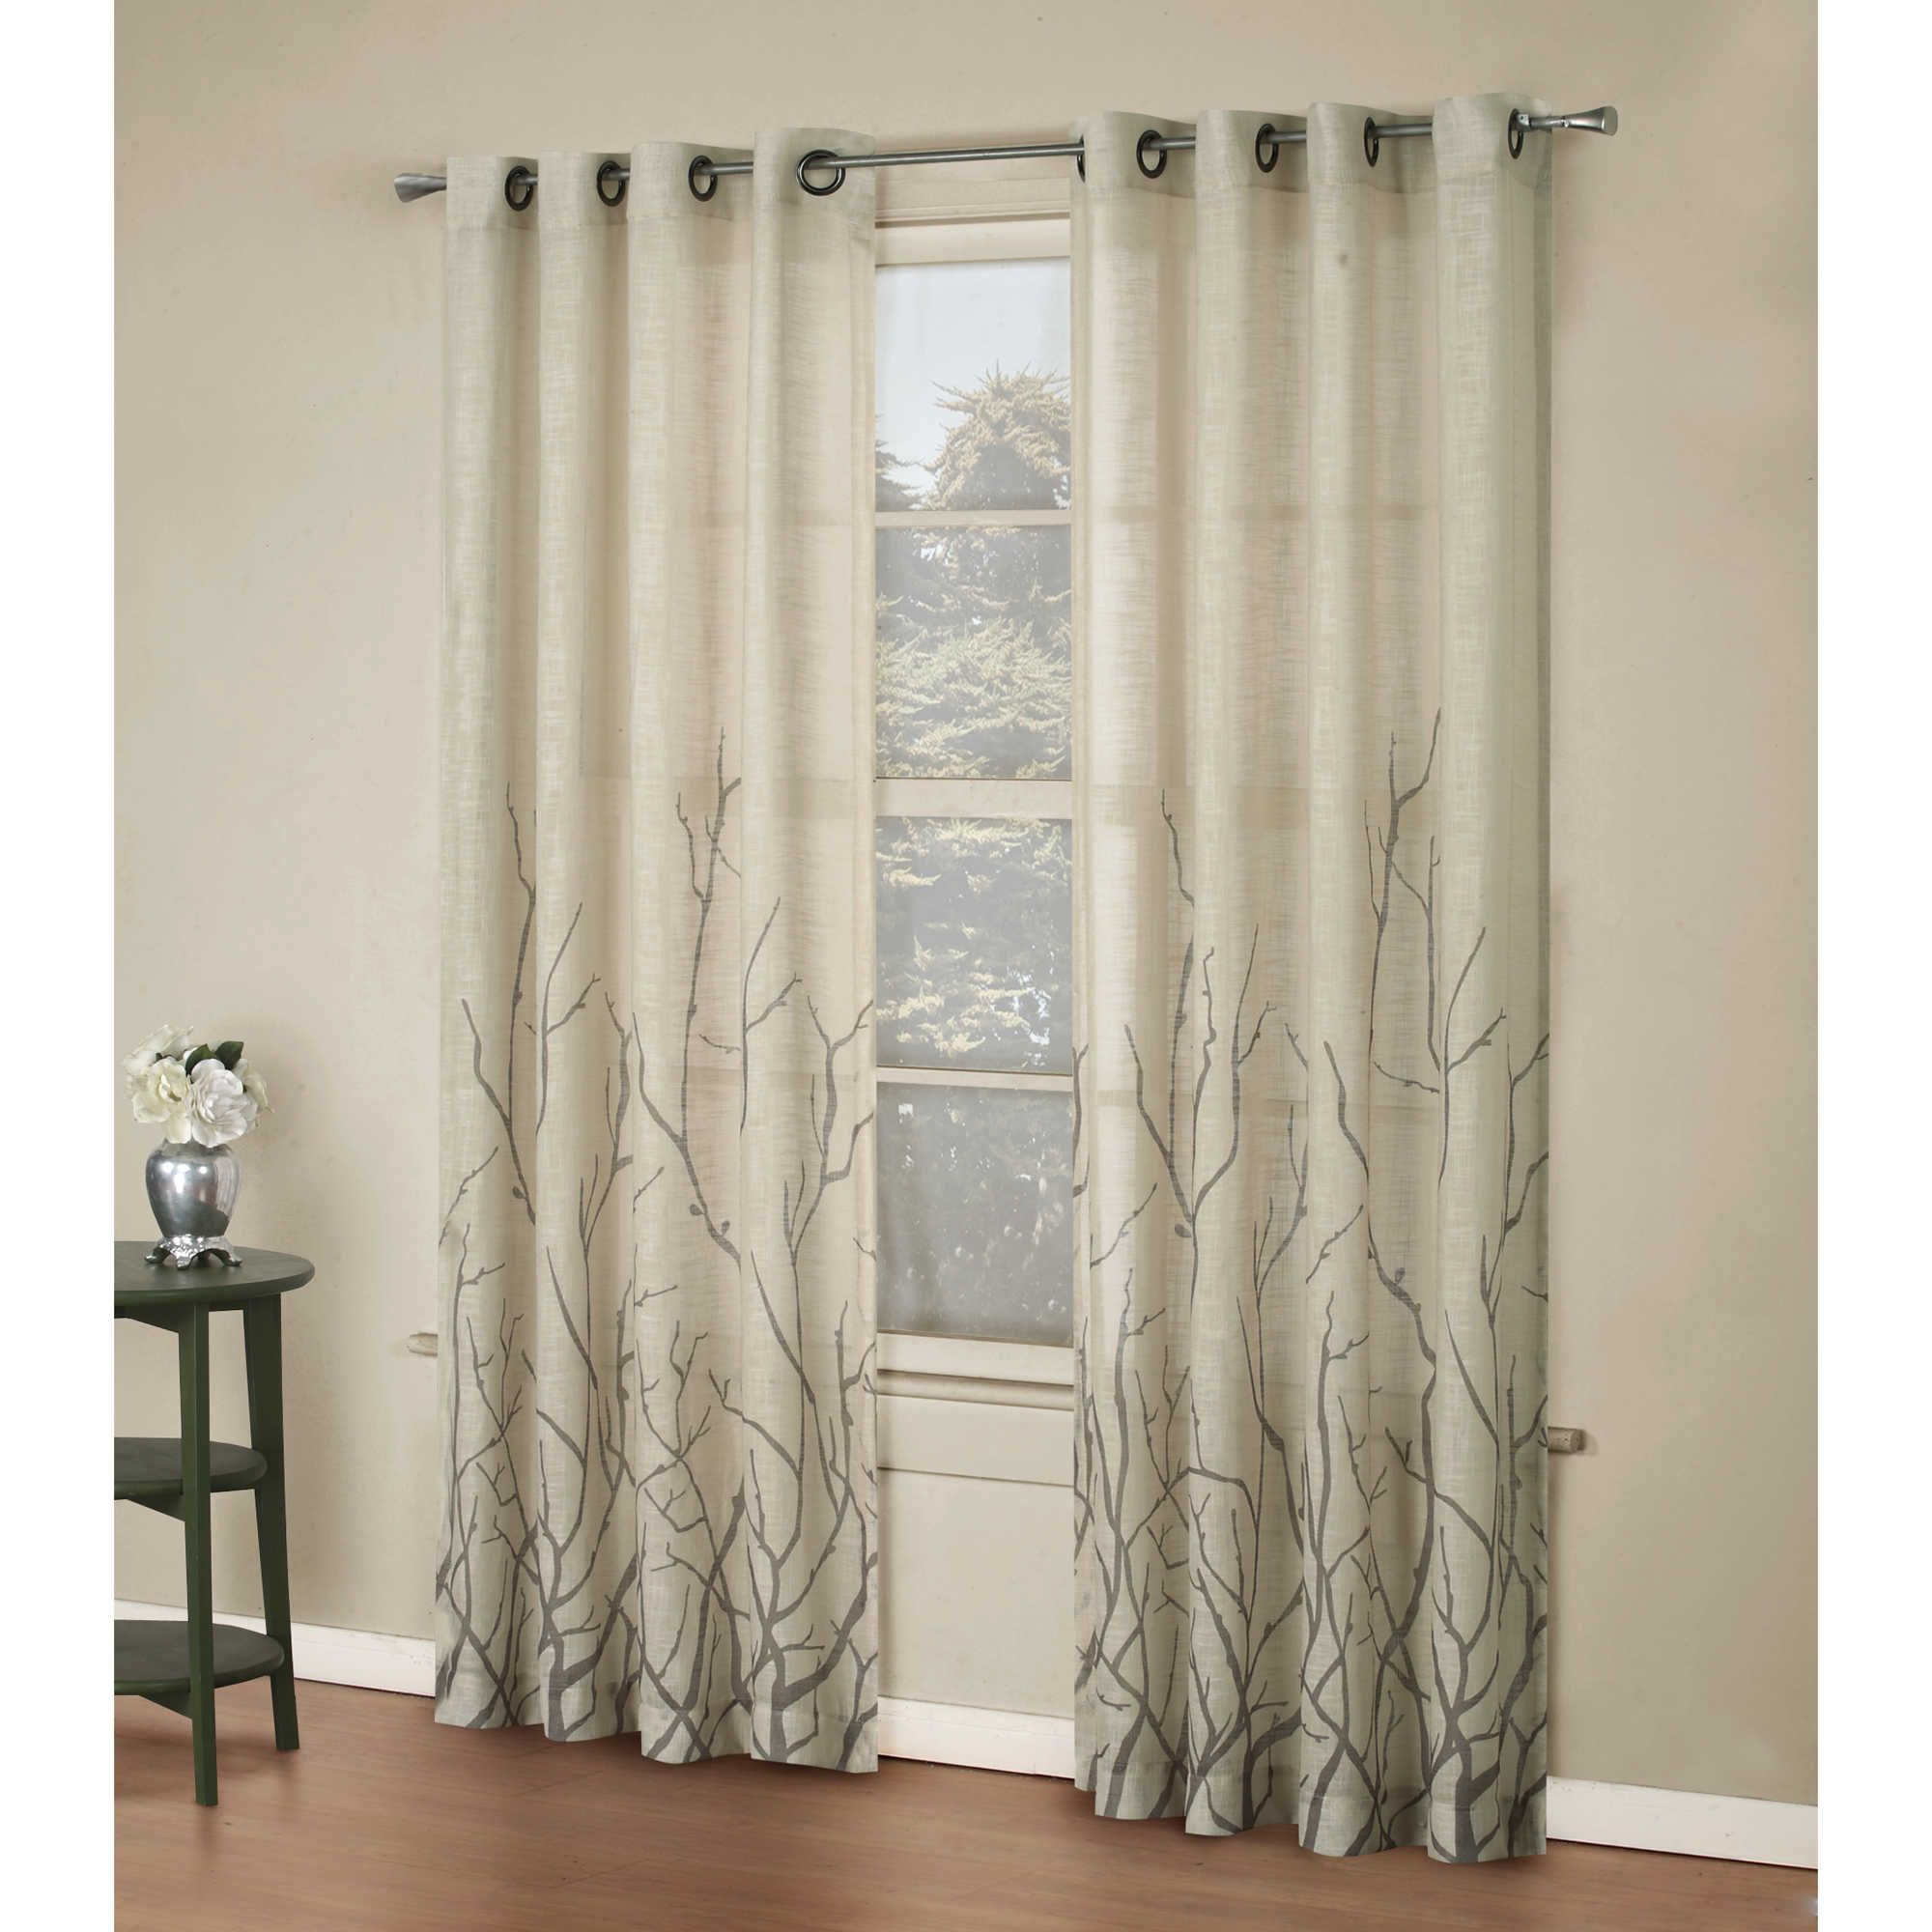 Invalid Url Panel Curtains Curtains Curtains Living Room #tan #curtains #for #living #room